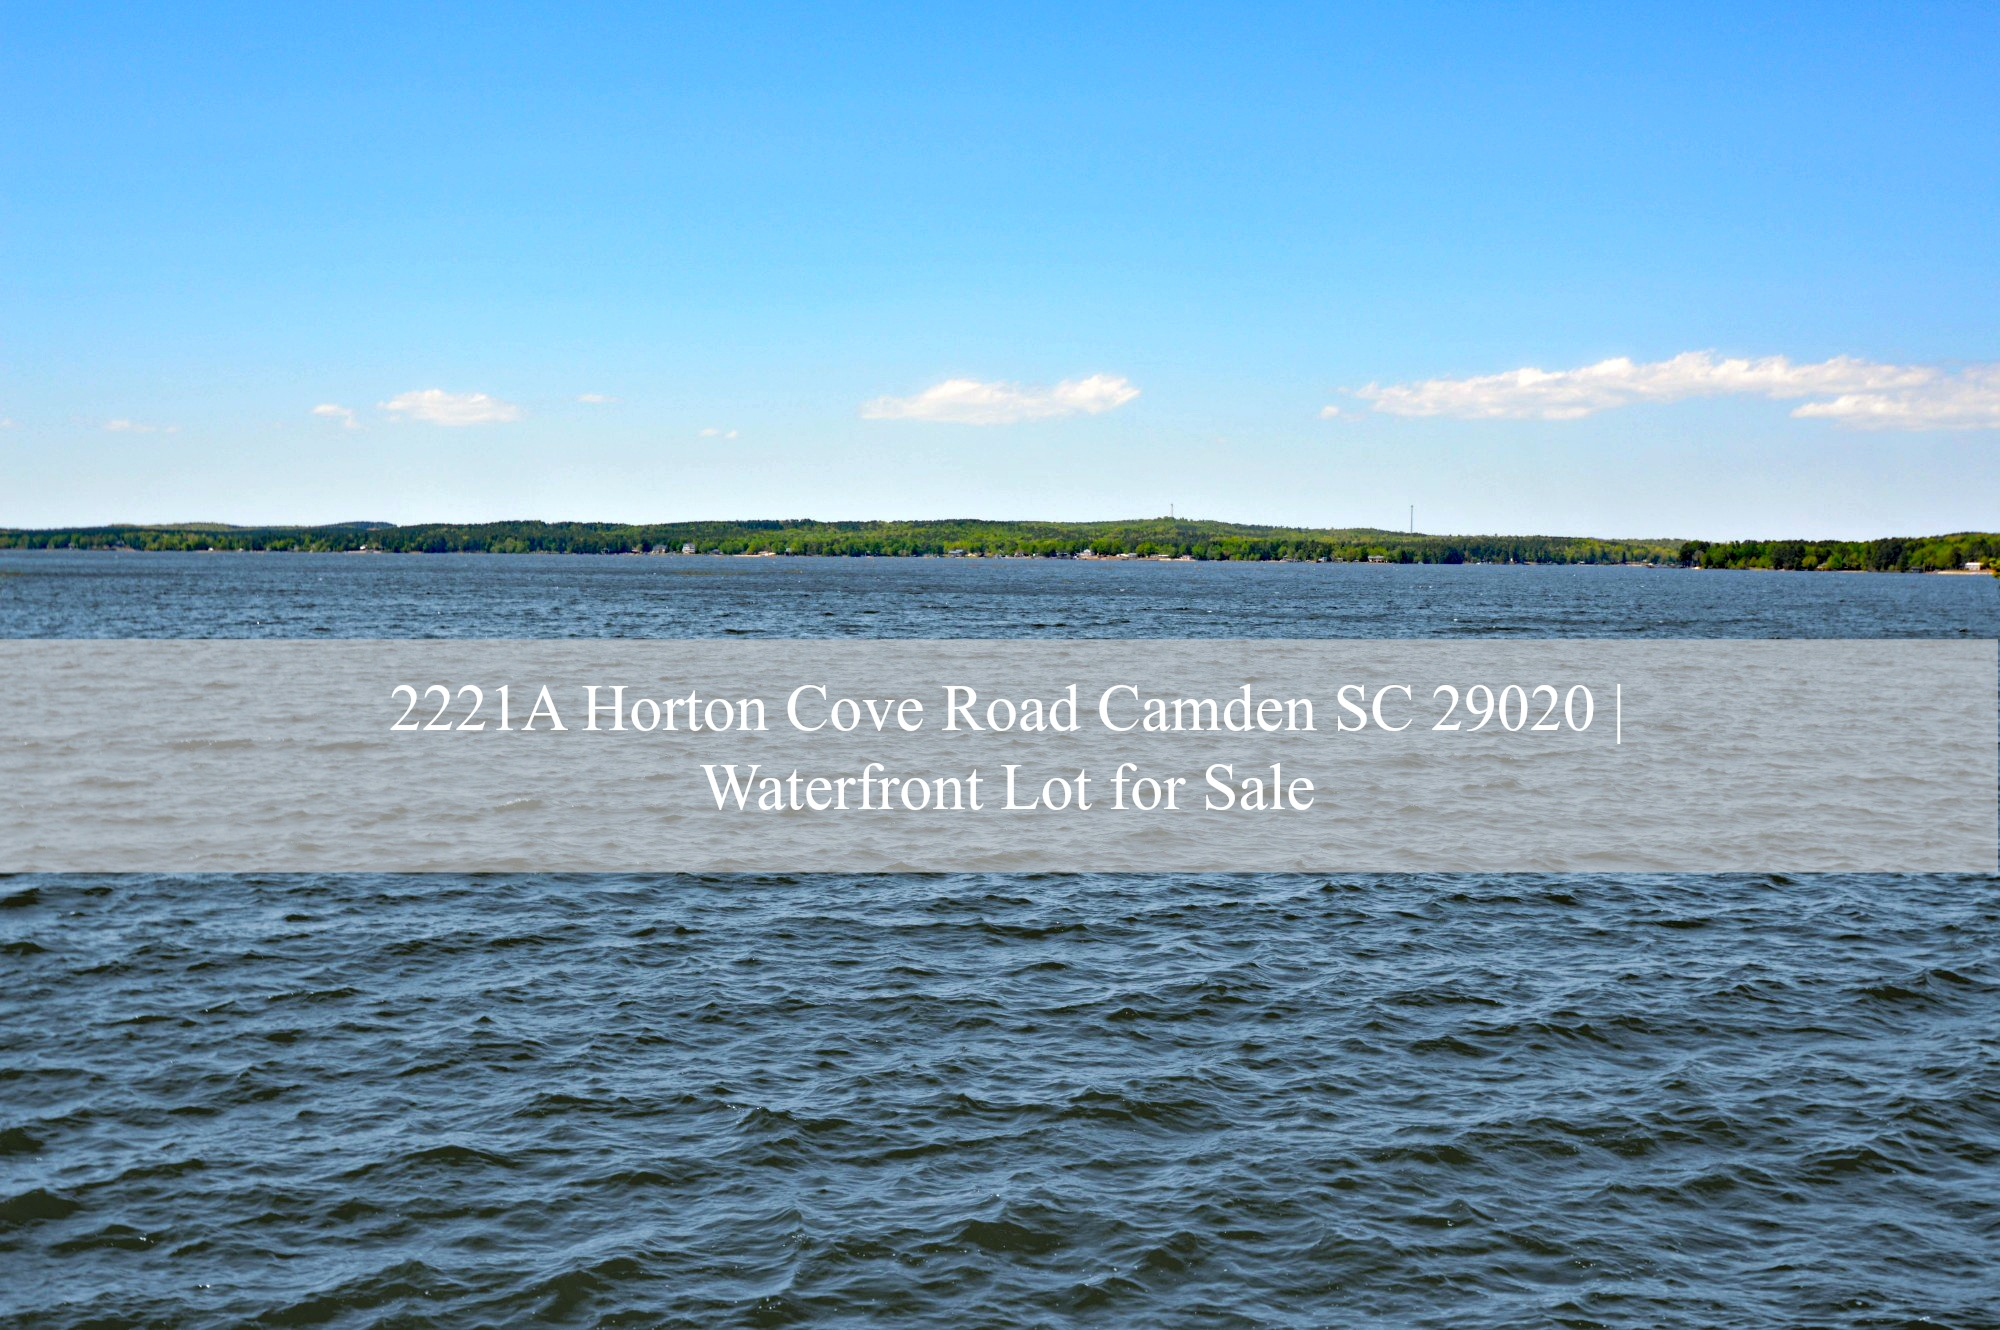 Lake Wateree SC Real Estate Property for Sale